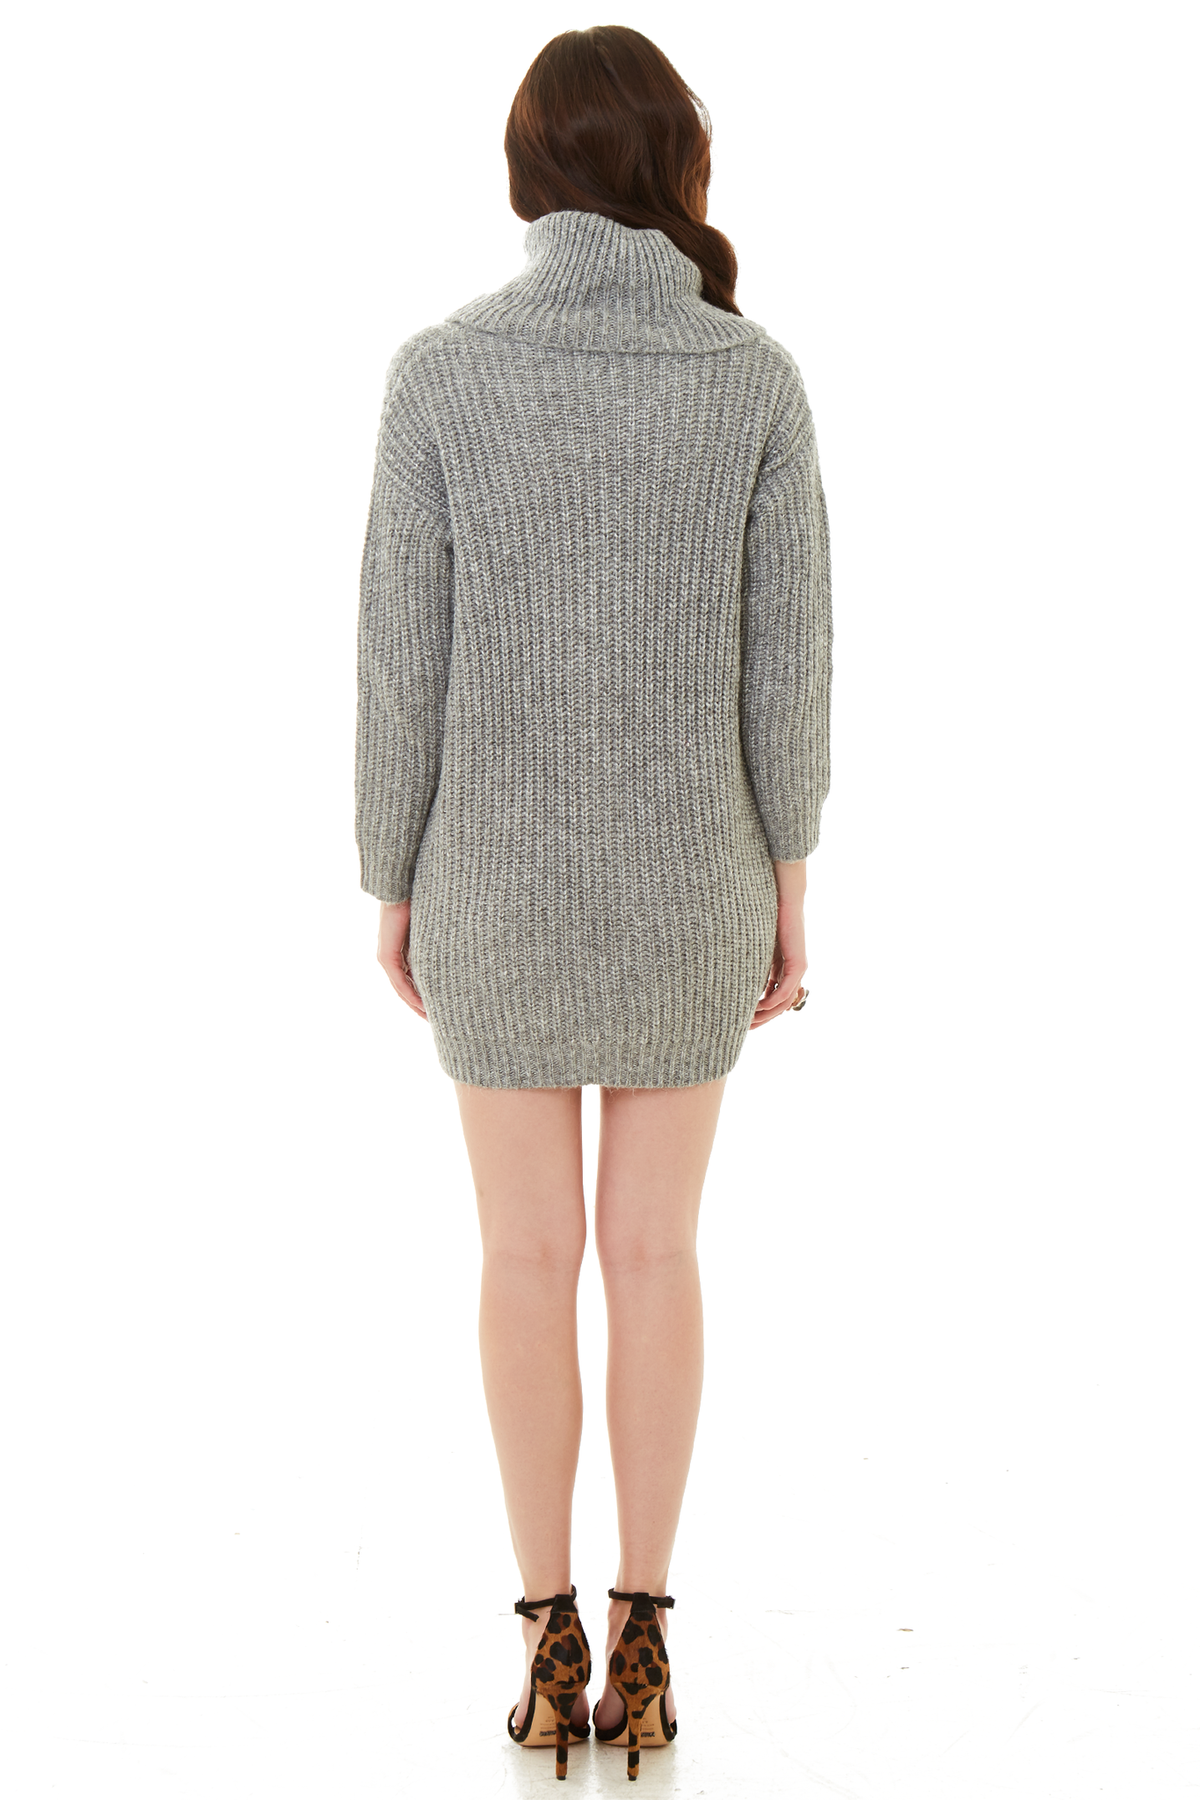 770e3cd4832 Cupcakes and Cashmere Heather Grey Ventura Sweater Dress